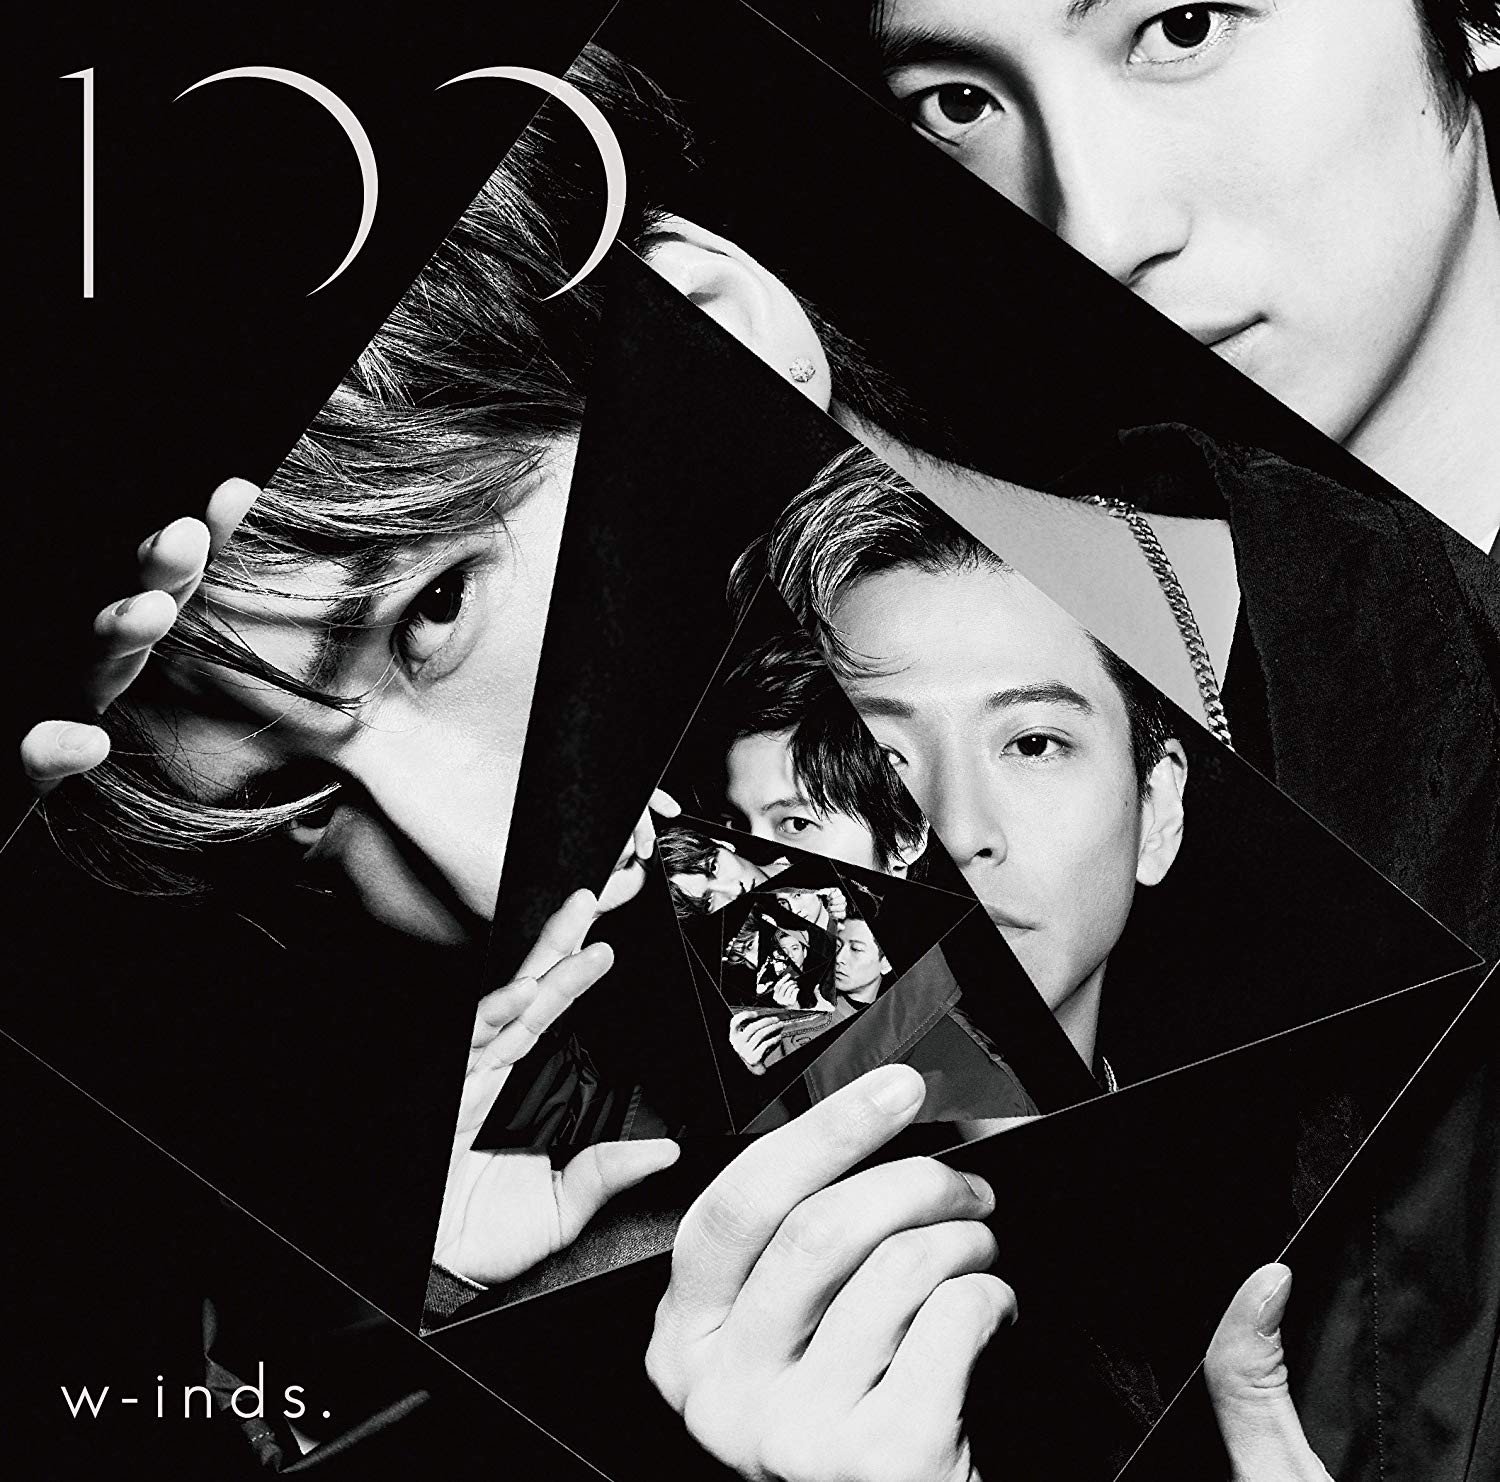 w-inds. – 100 [FLAC + MP3 320 + Blu-Ray ISO] [2018.07.04]